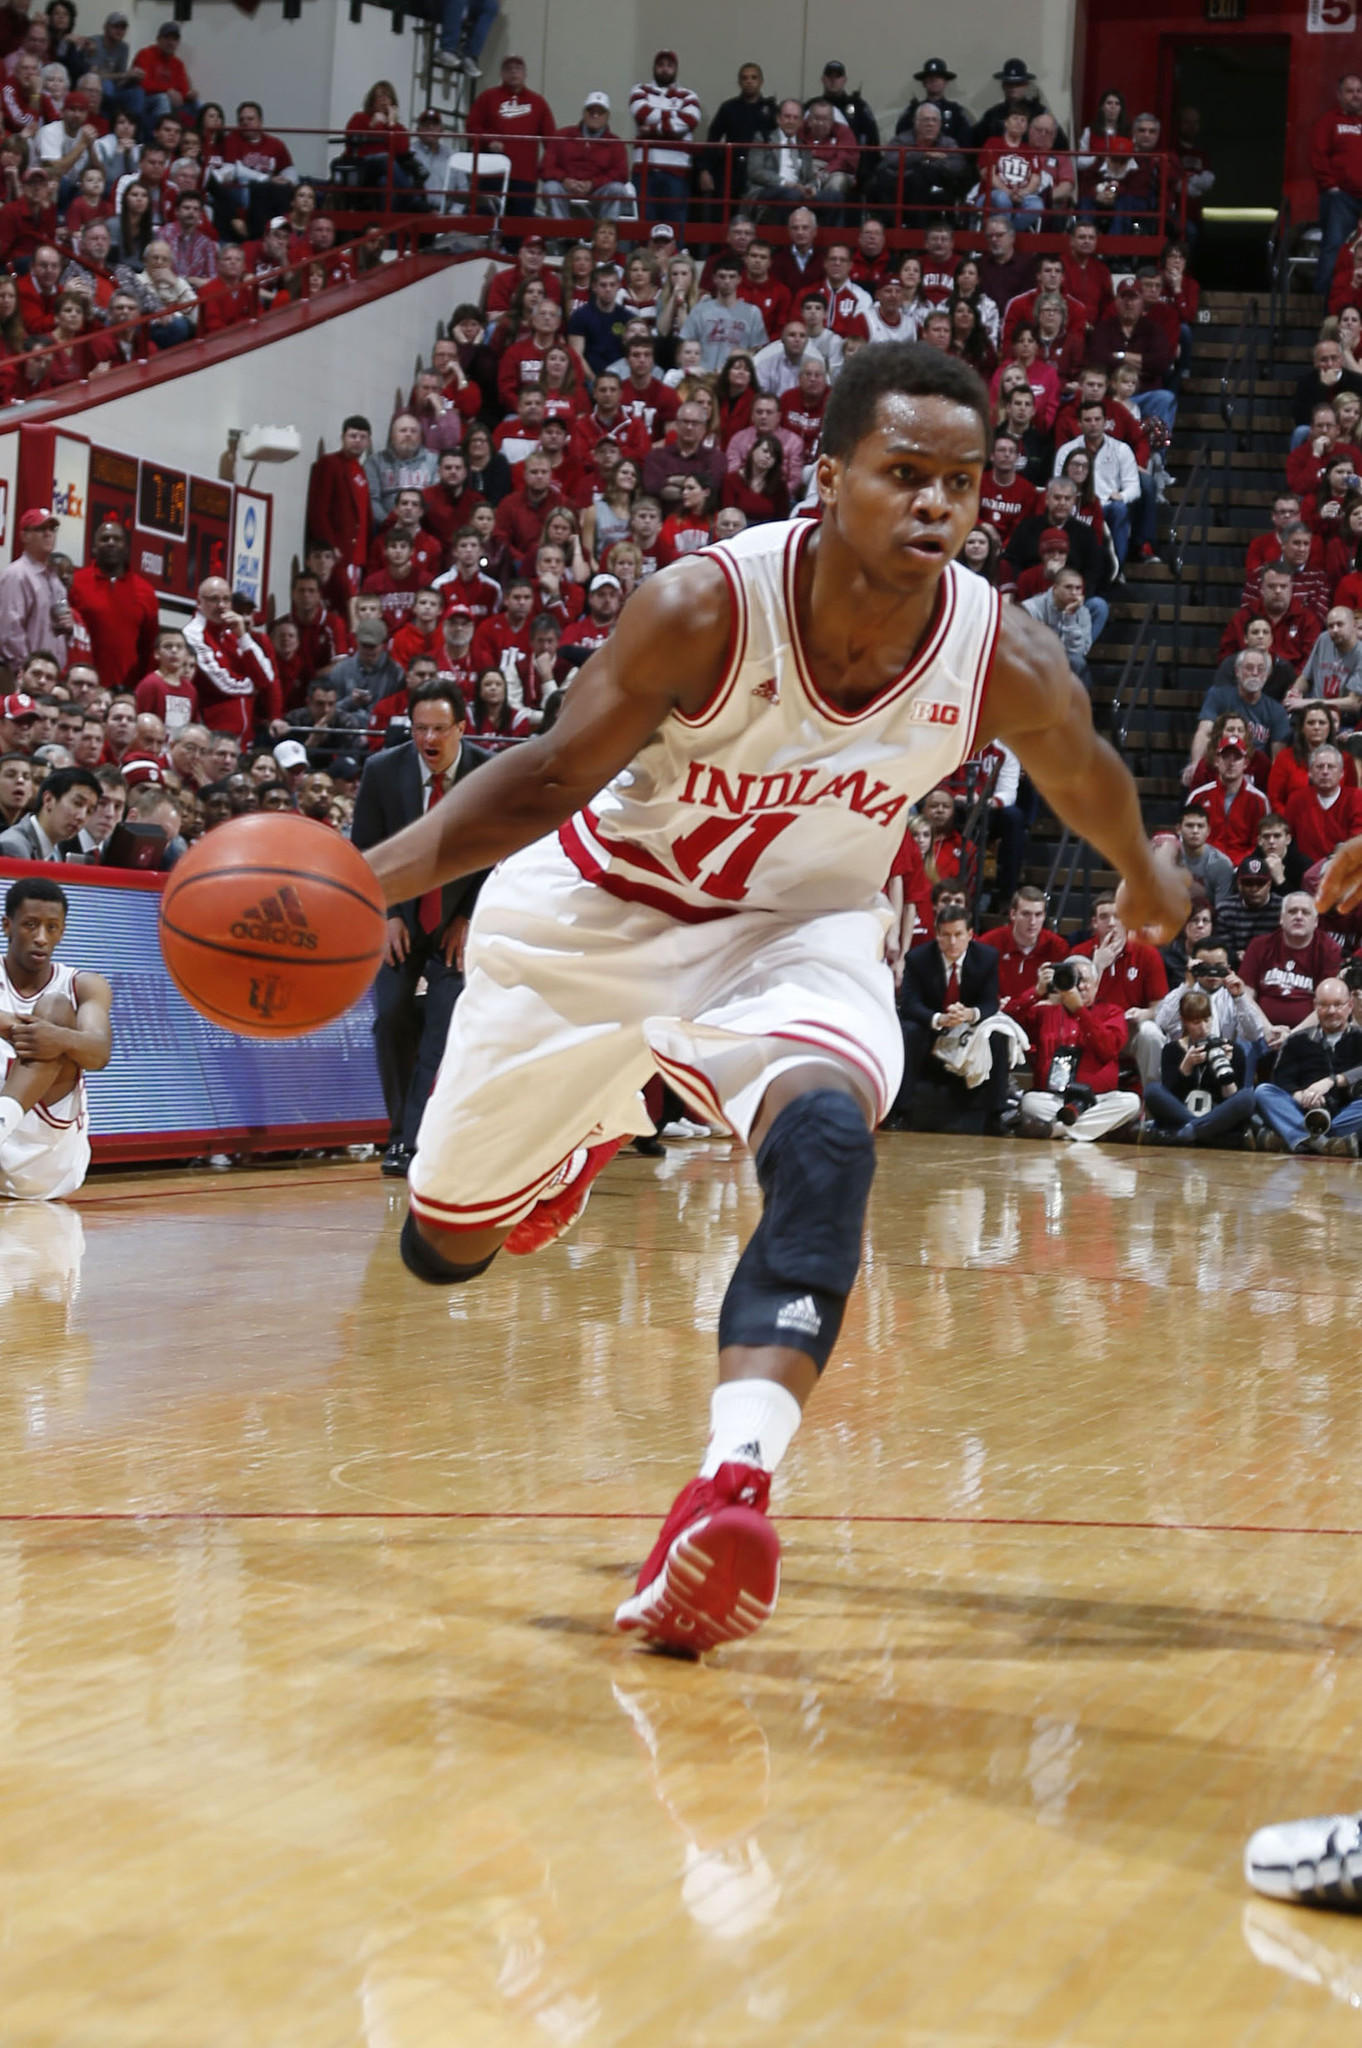 Indiana guard Yogi Ferrell drives to the basket against Michigan at Assembly Hall.